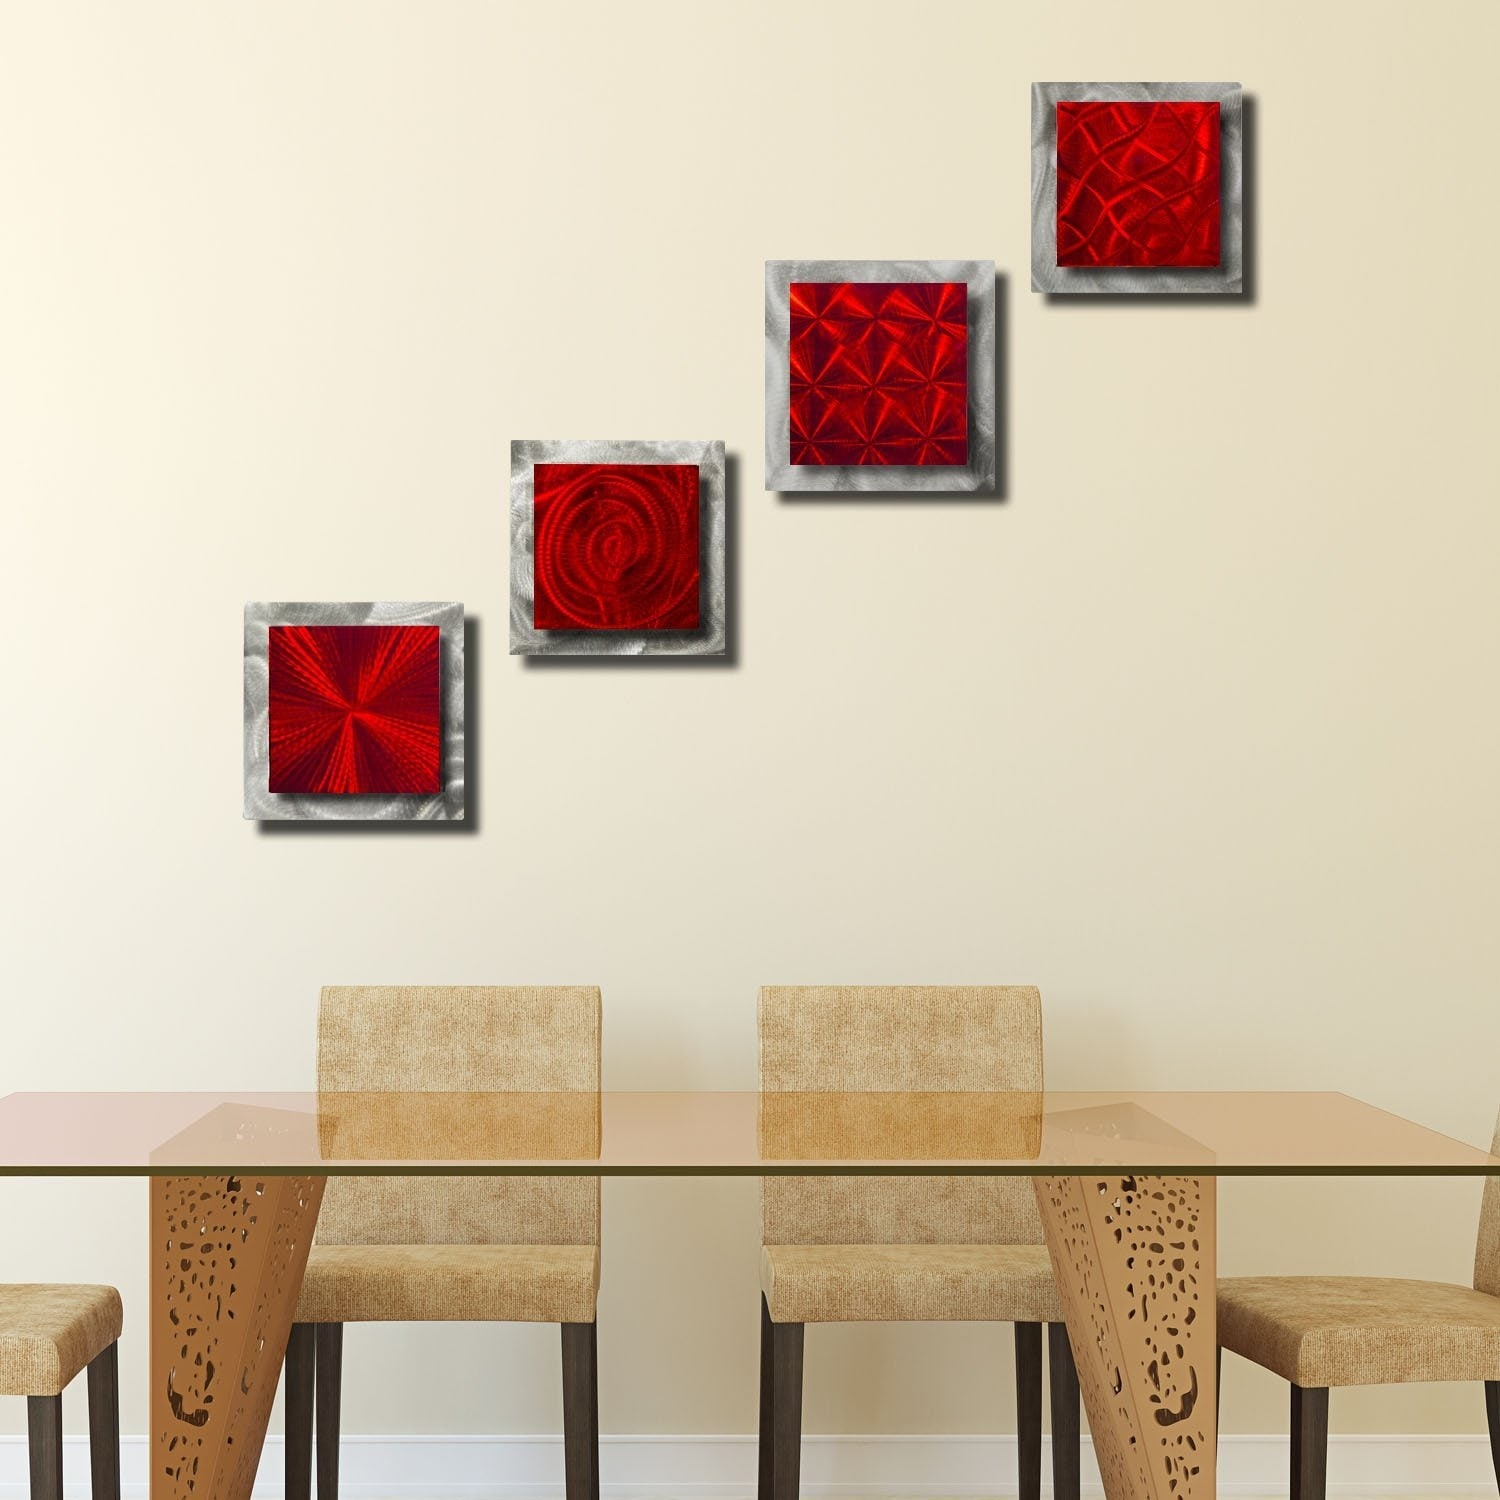 Set of 5 Red Abstract Metal Wall Art Sculpture Decor Accents by Jon Allen